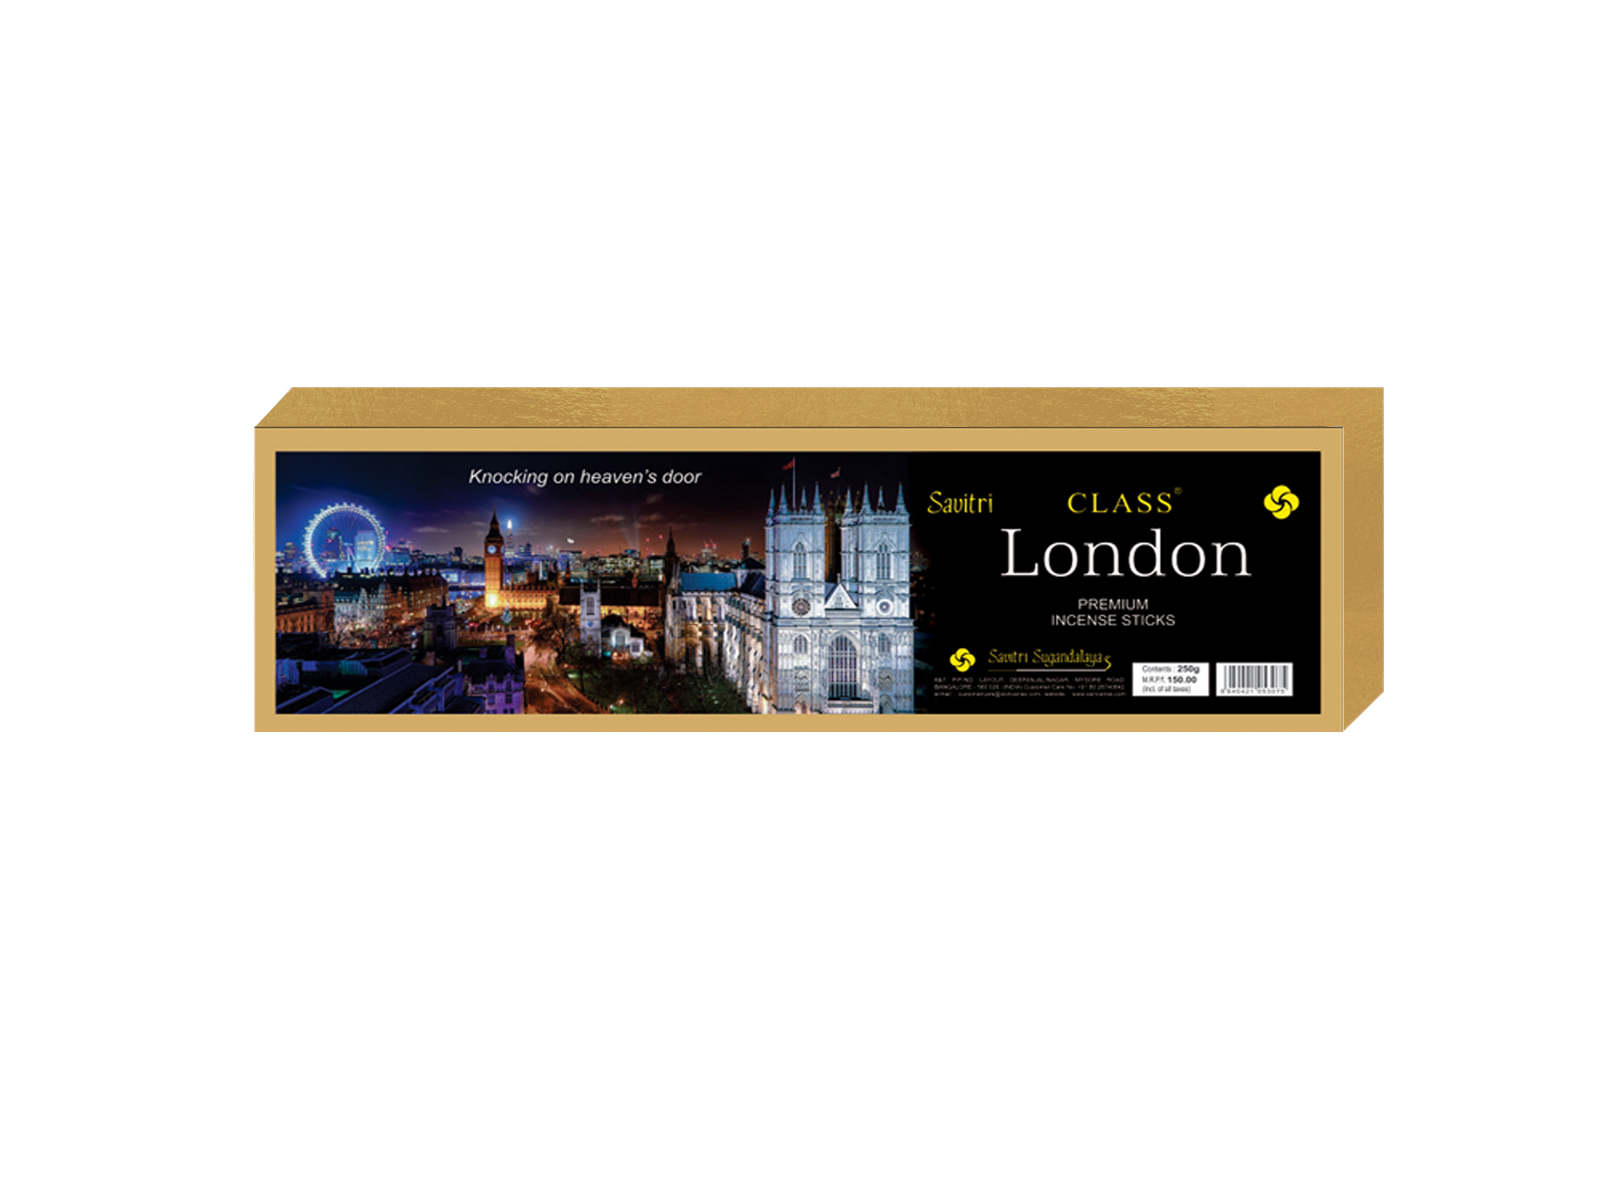 London_gold Box